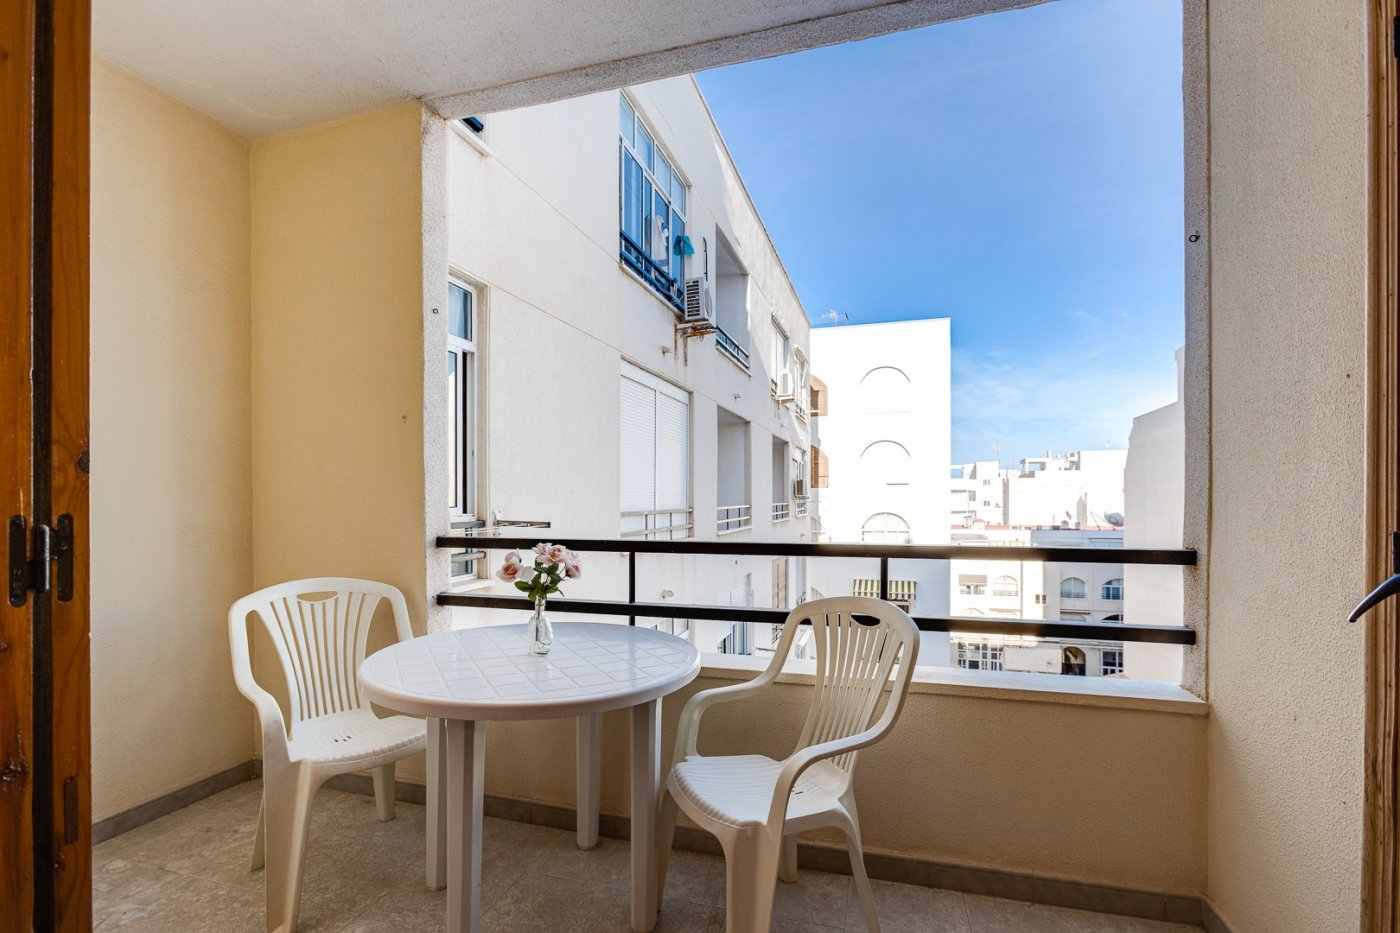 STUDIO APARTMENT IN HABANERAS AREA, TORREVIEJA